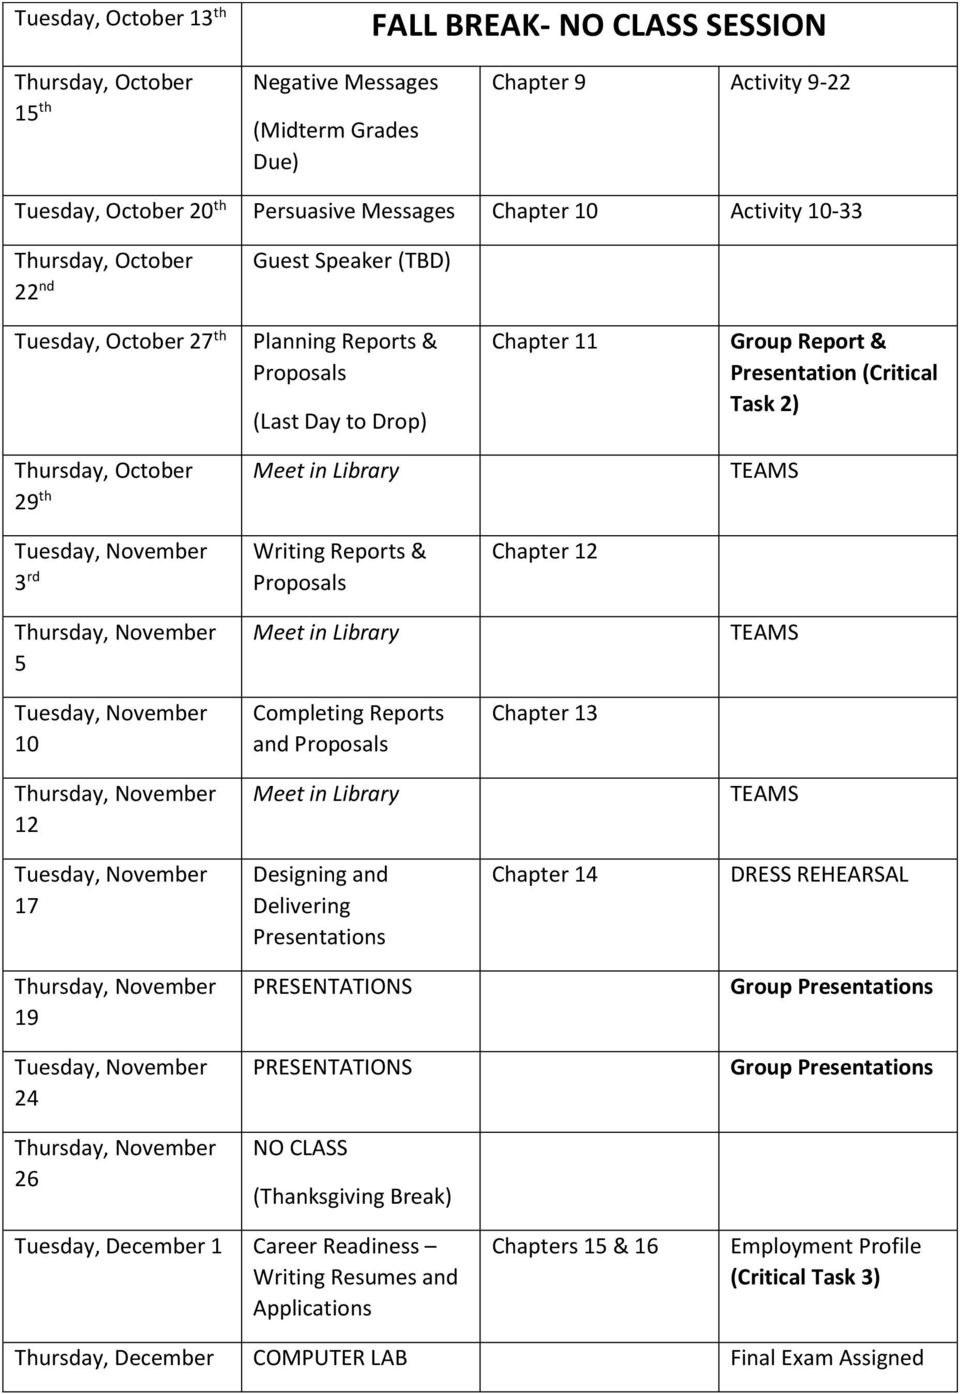 October 29 th Meet in Library TEAMS Tuesday, November 3 rd Writing Reports & Proposals Chapter 12 Thursday, November 5 Meet in Library TEAMS Tuesday, November 10 Completing Reports and Proposals